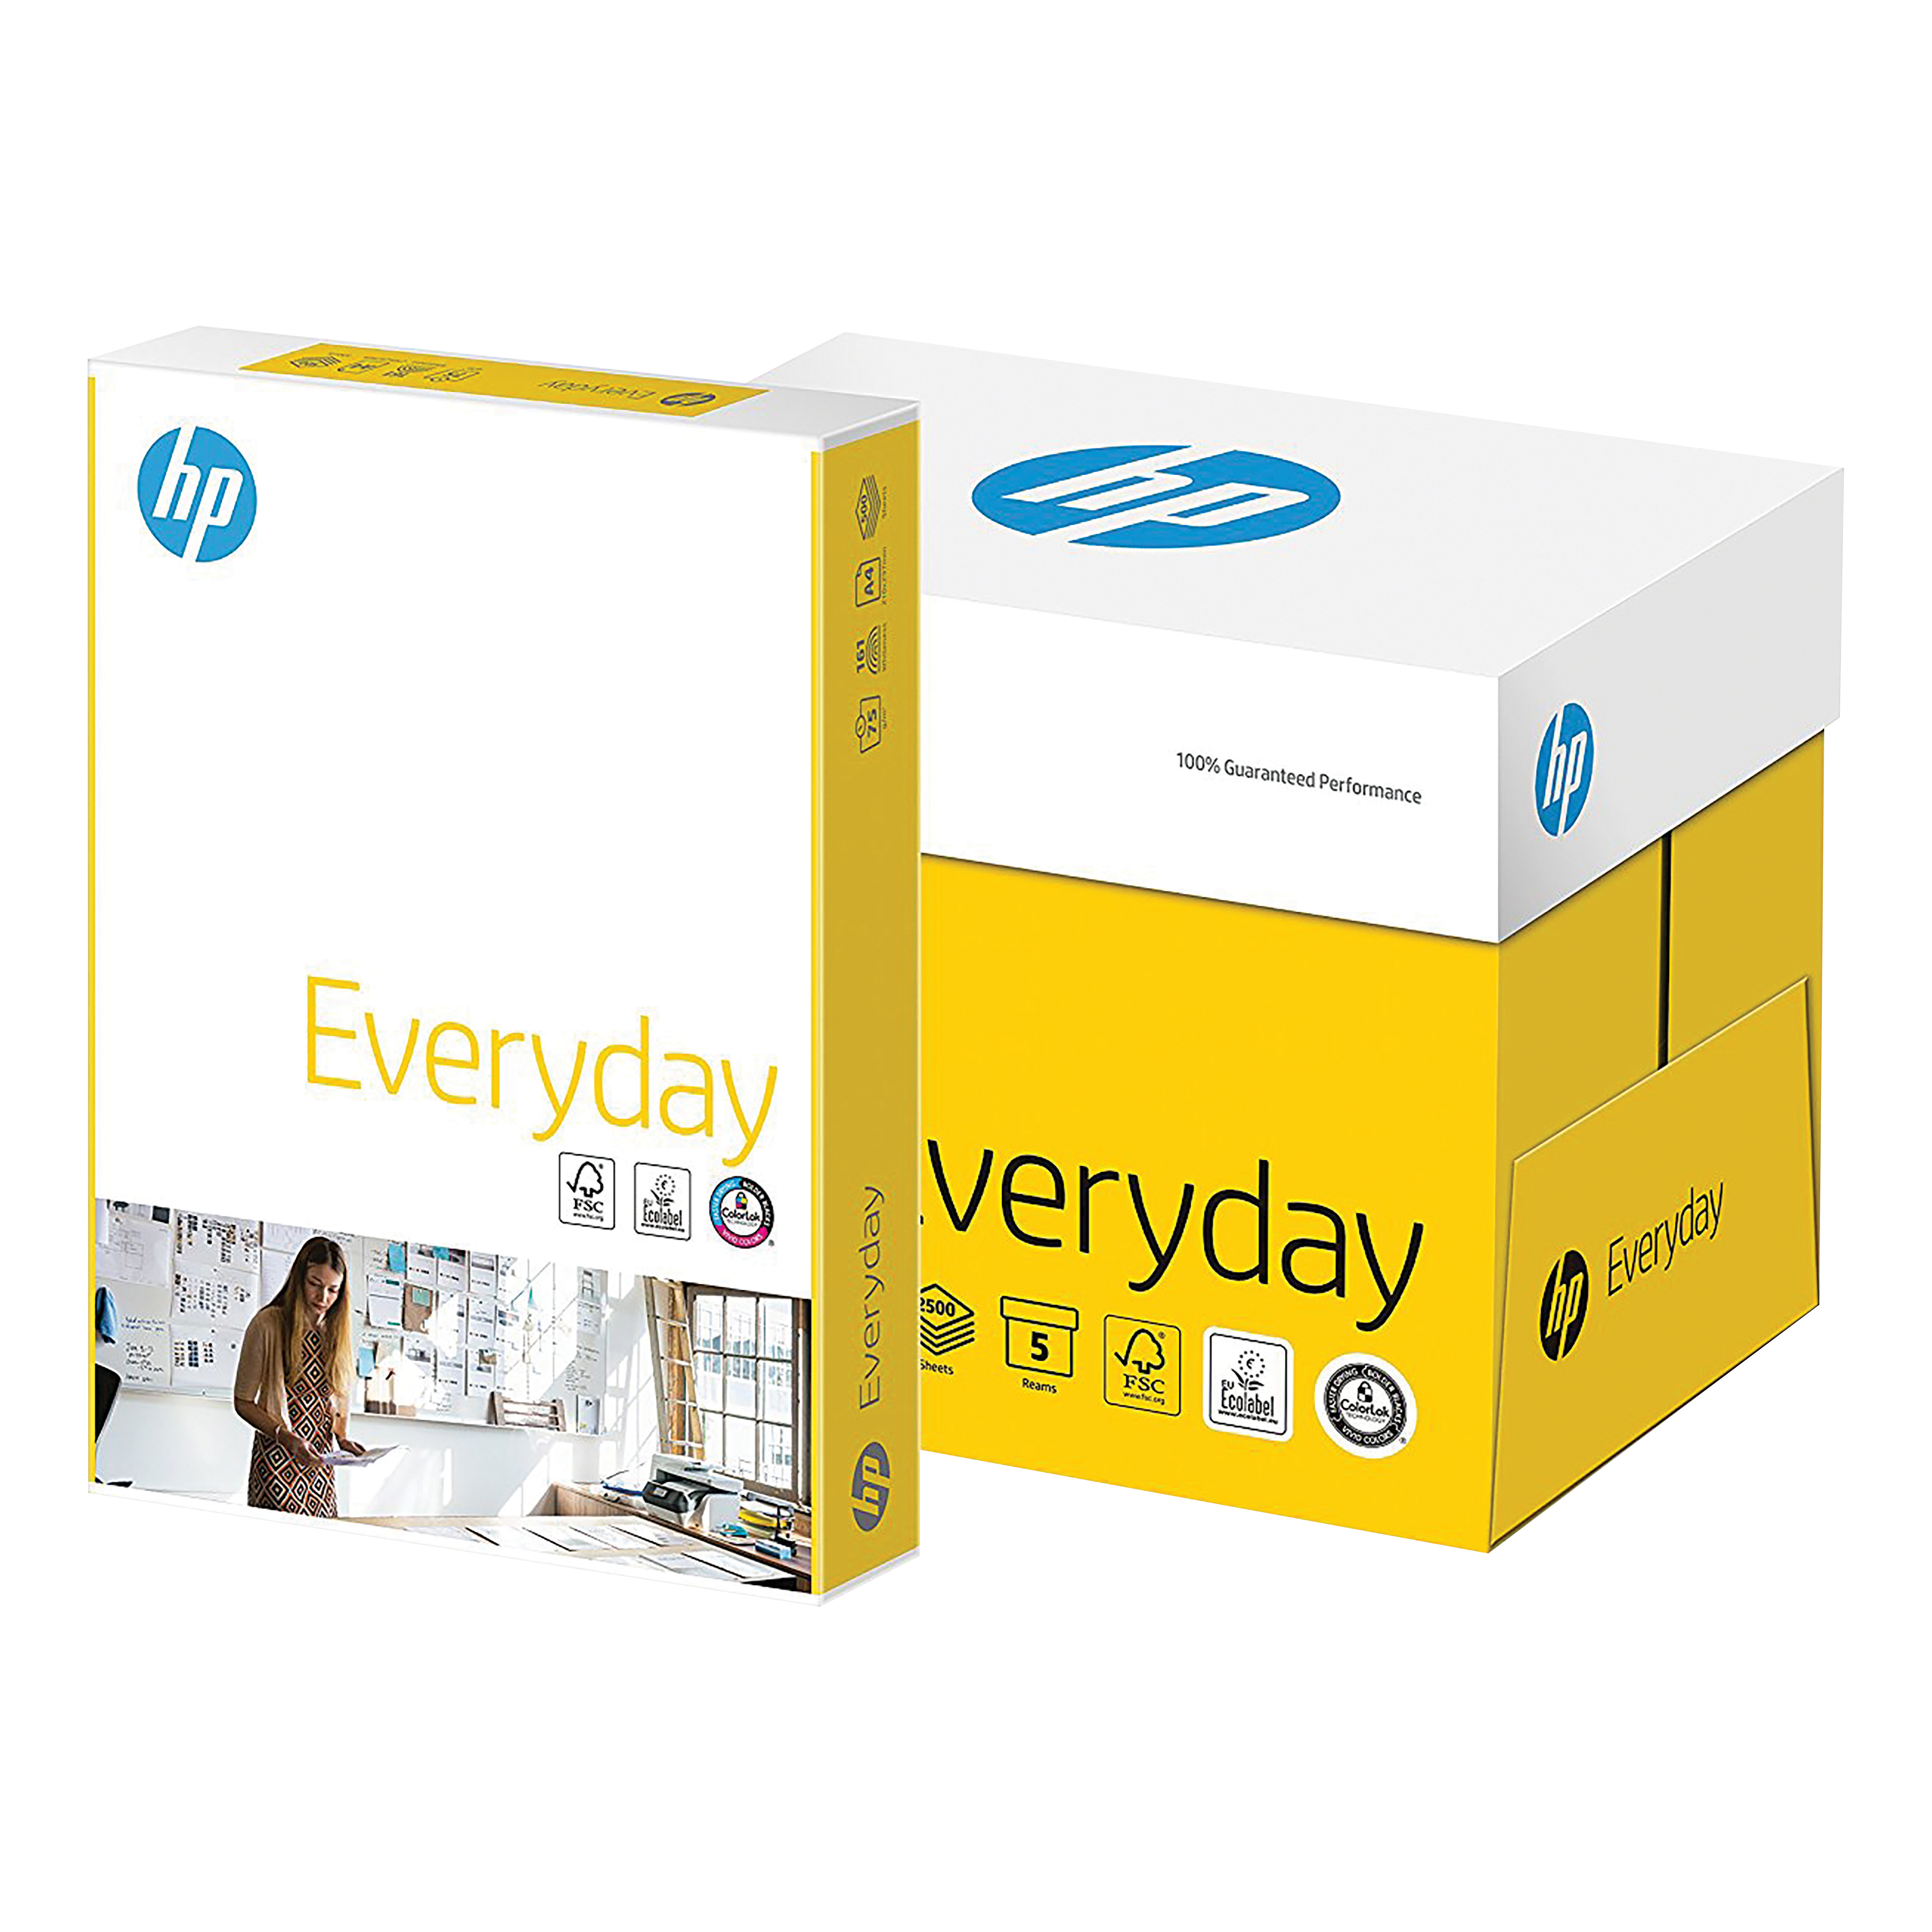 Hewlett Packard HP Everyday Paper PEFC Colorlok 75gsm A4 White Ref CHP650 5 x 500 Sheets